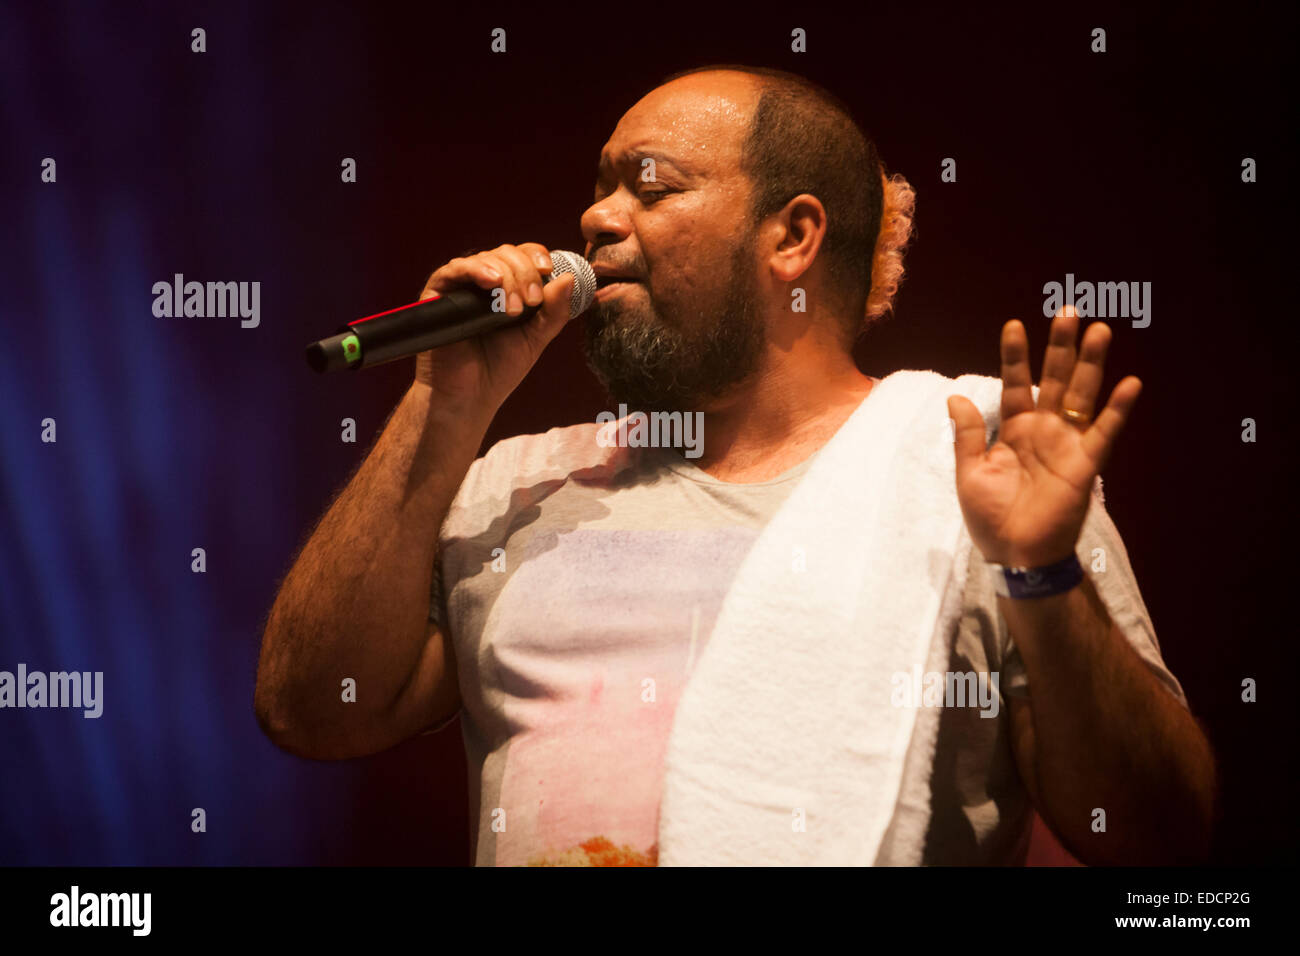 Paulo Flores, Angolan musician, singing at the Dipanda festival in Meo Arena, Lisbon, Portugal. - Stock Image